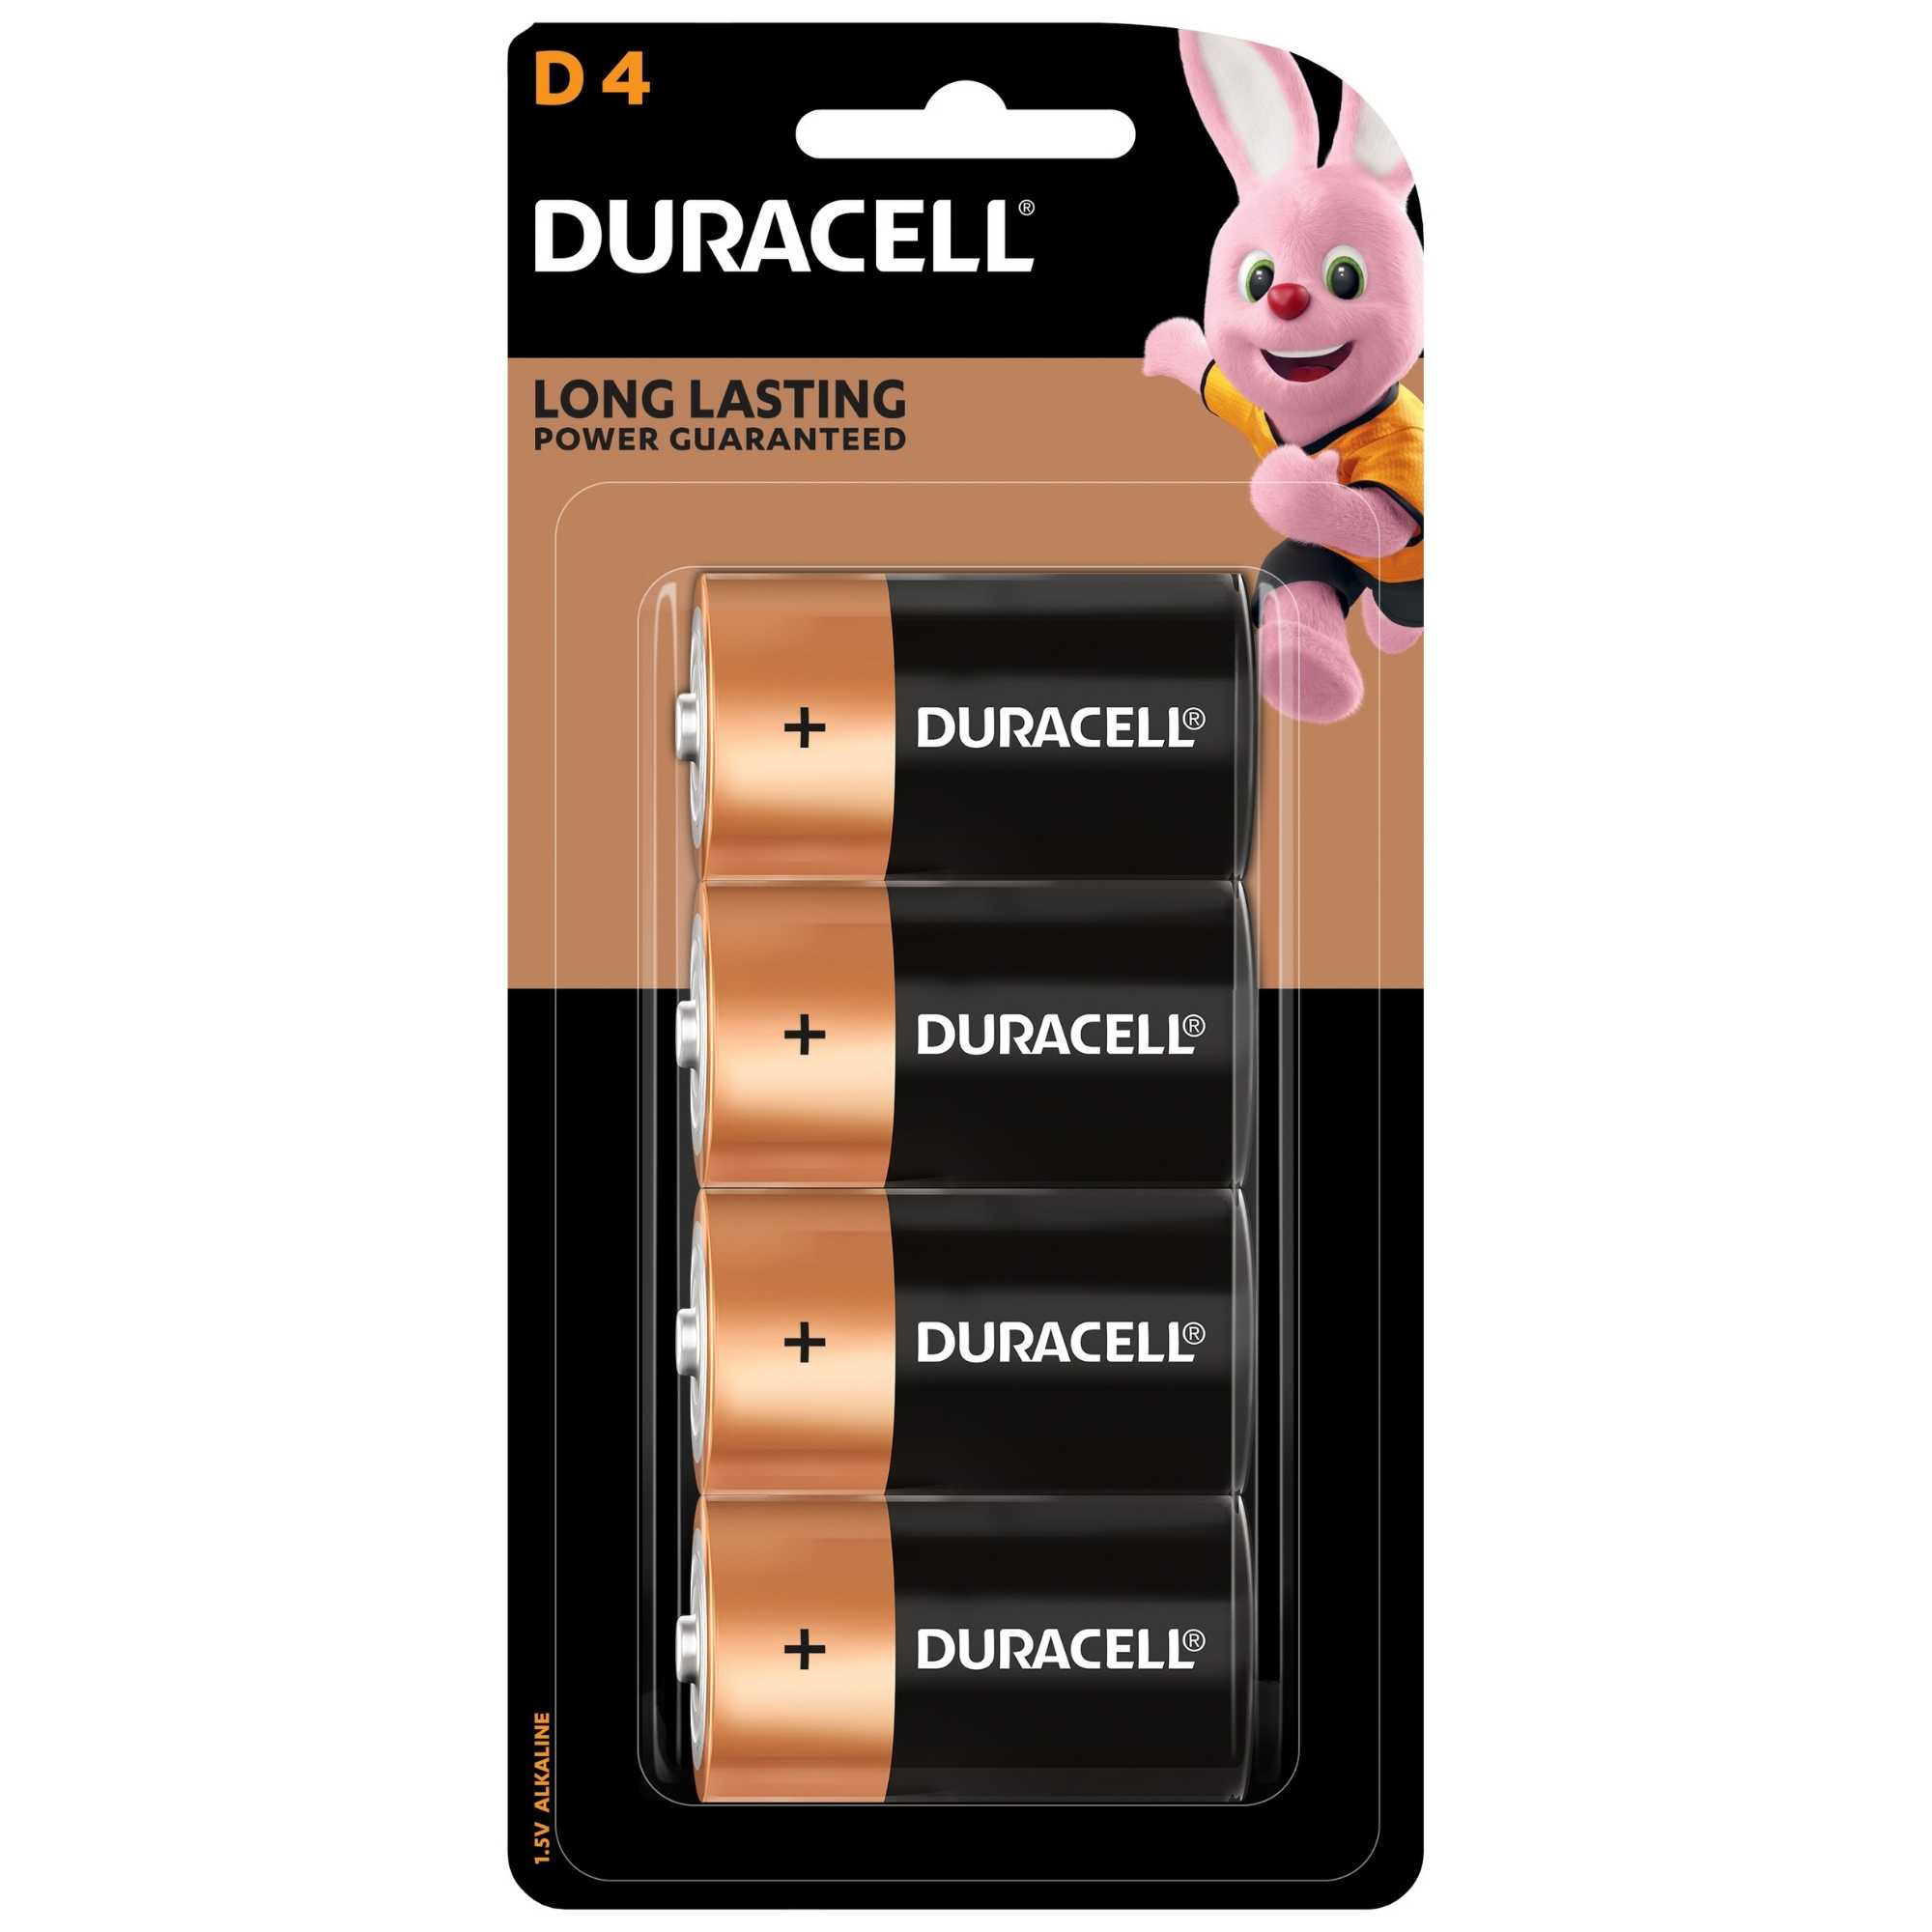 Duracell Coppertop D4